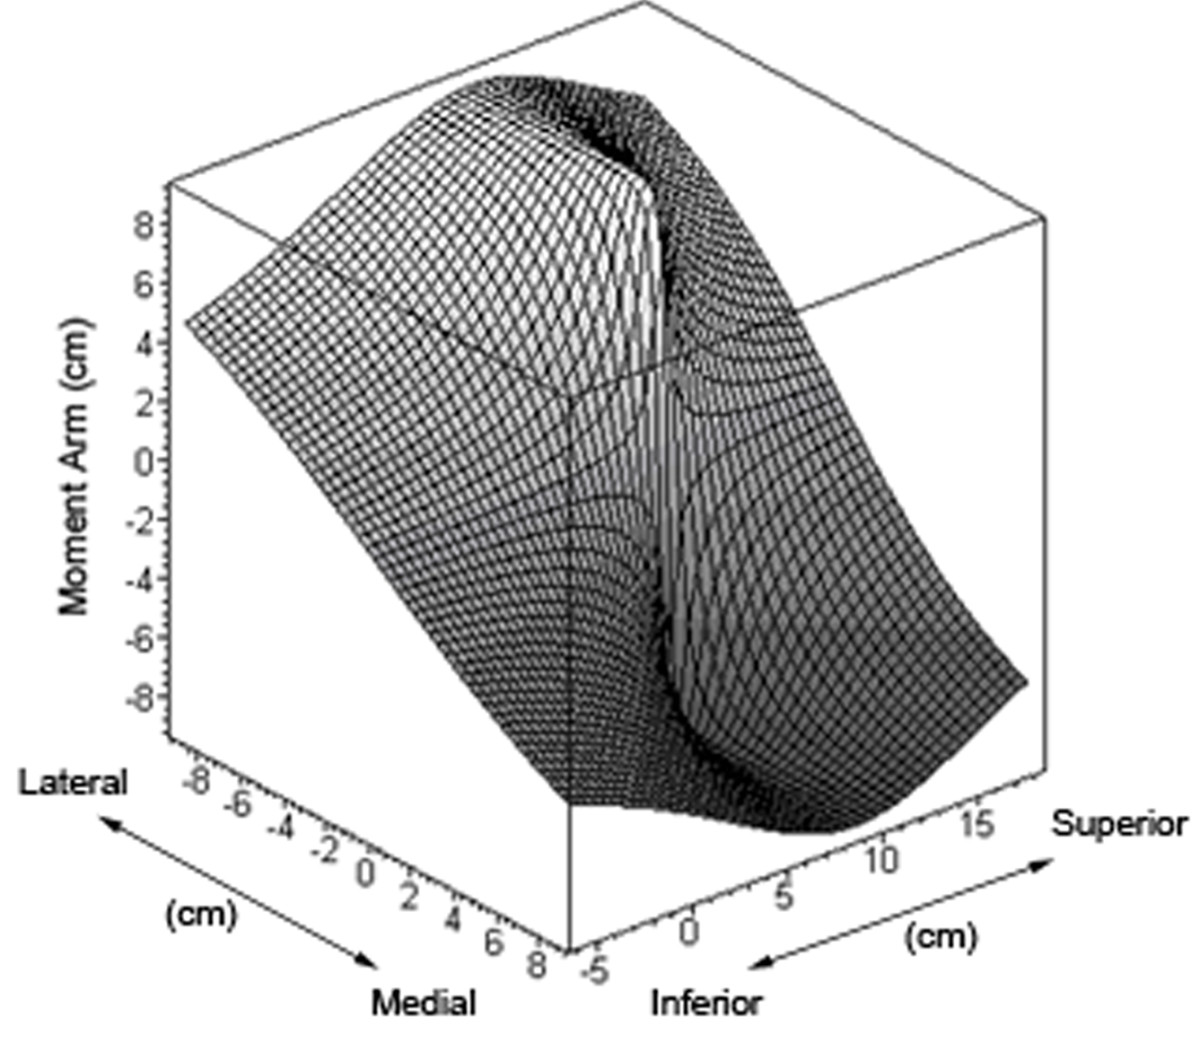 http://static-content.springer.com/image/art%3A10.1186%2F1749-799X-6-6/MediaObjects/13018_2010_Article_241_Fig10_HTML.jpg